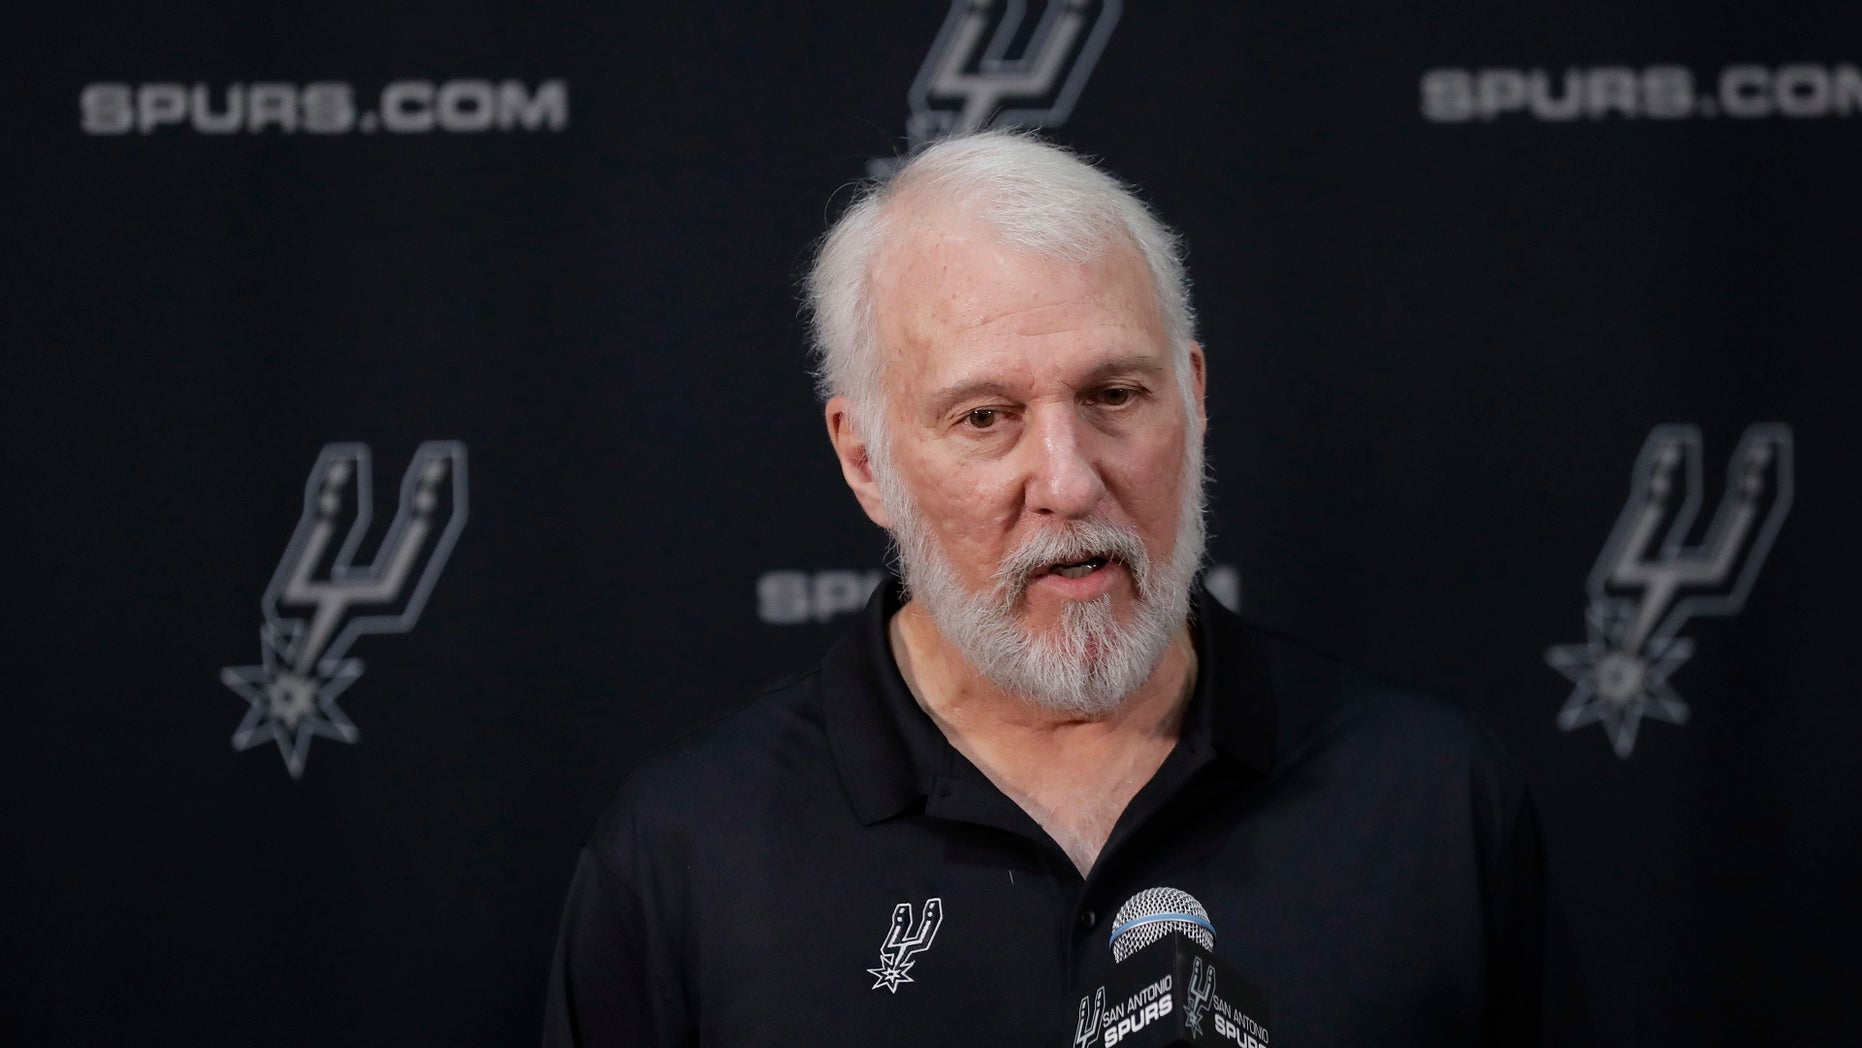 San Antonio Spurs coach Gregg Popovich sounded off Monday against President Trump